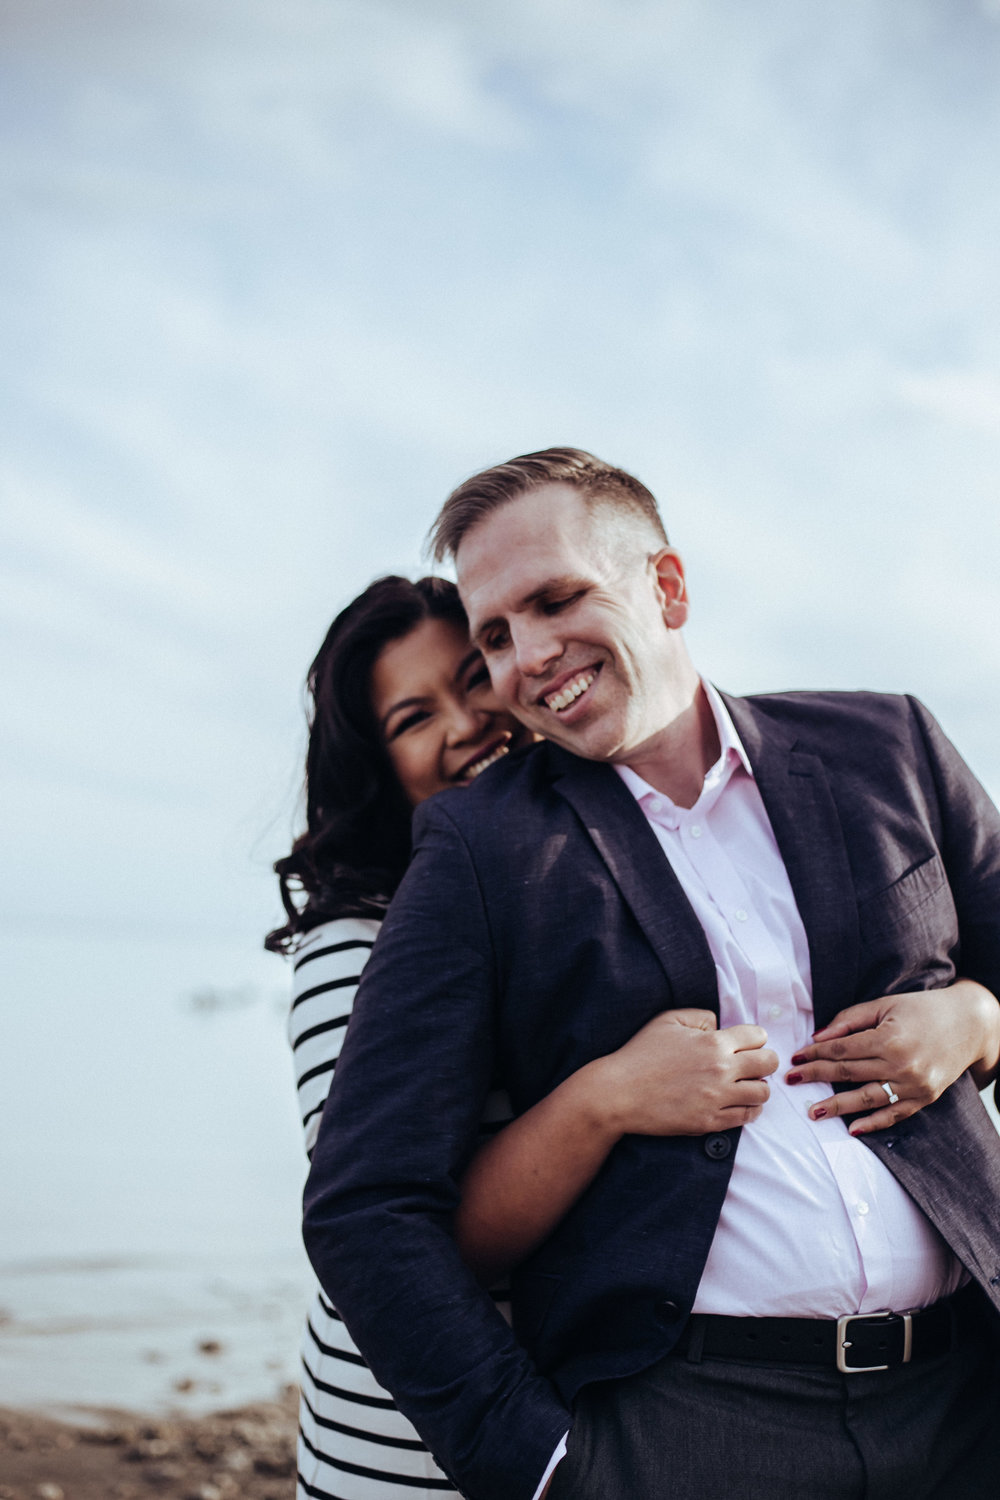 J&C_Esession_BLOG-7.jpg